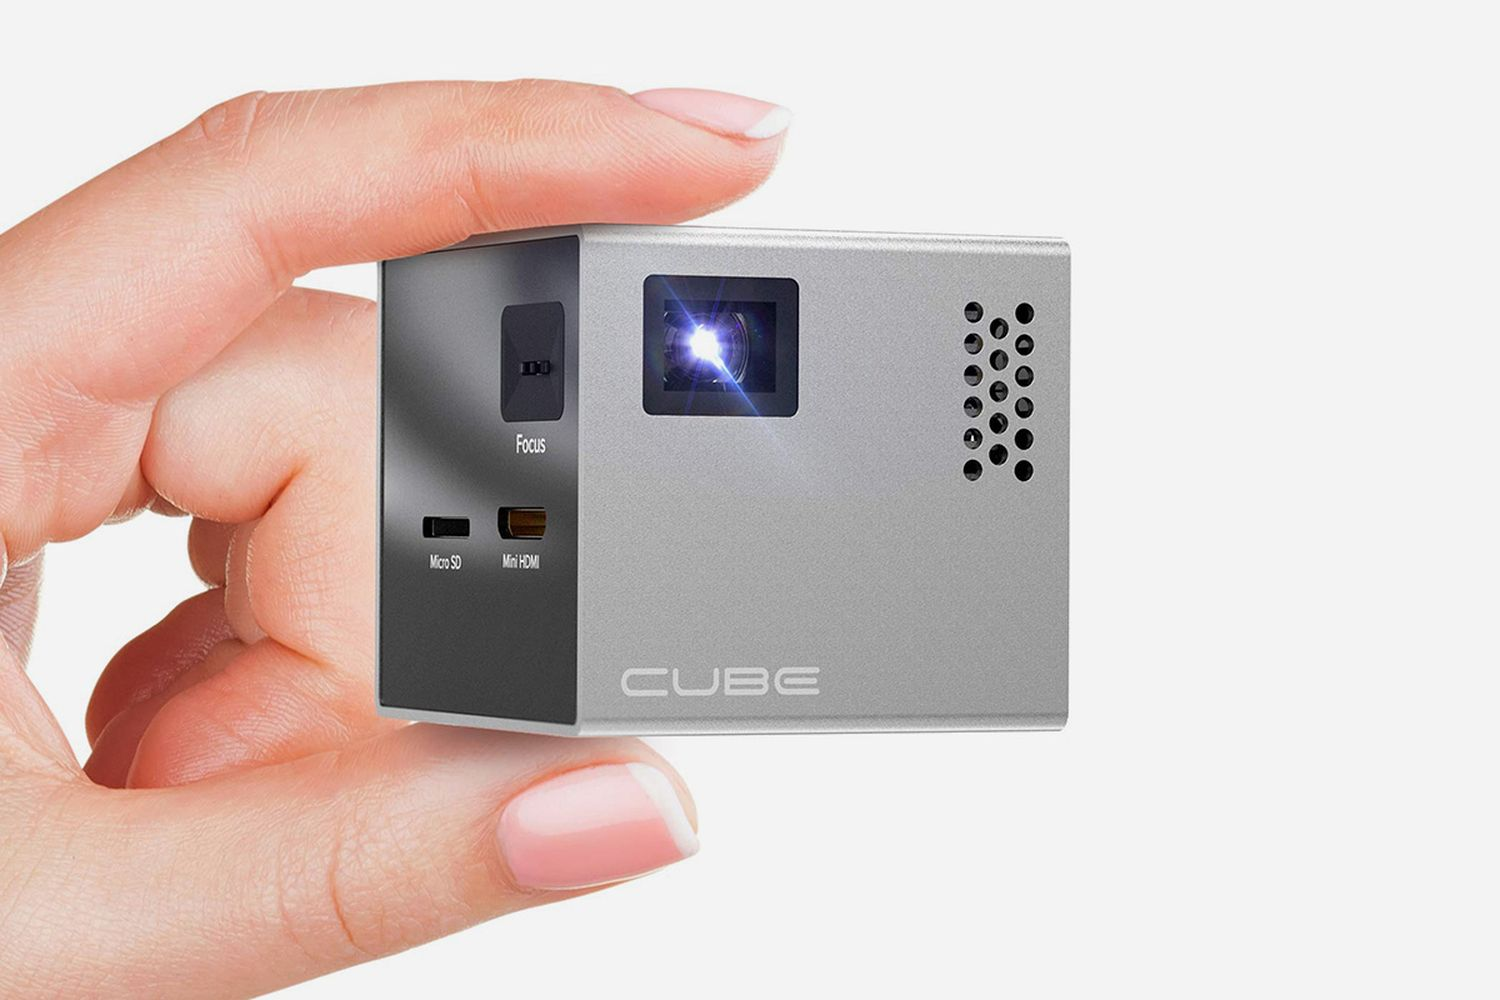 Cube Full LED Mini Projector